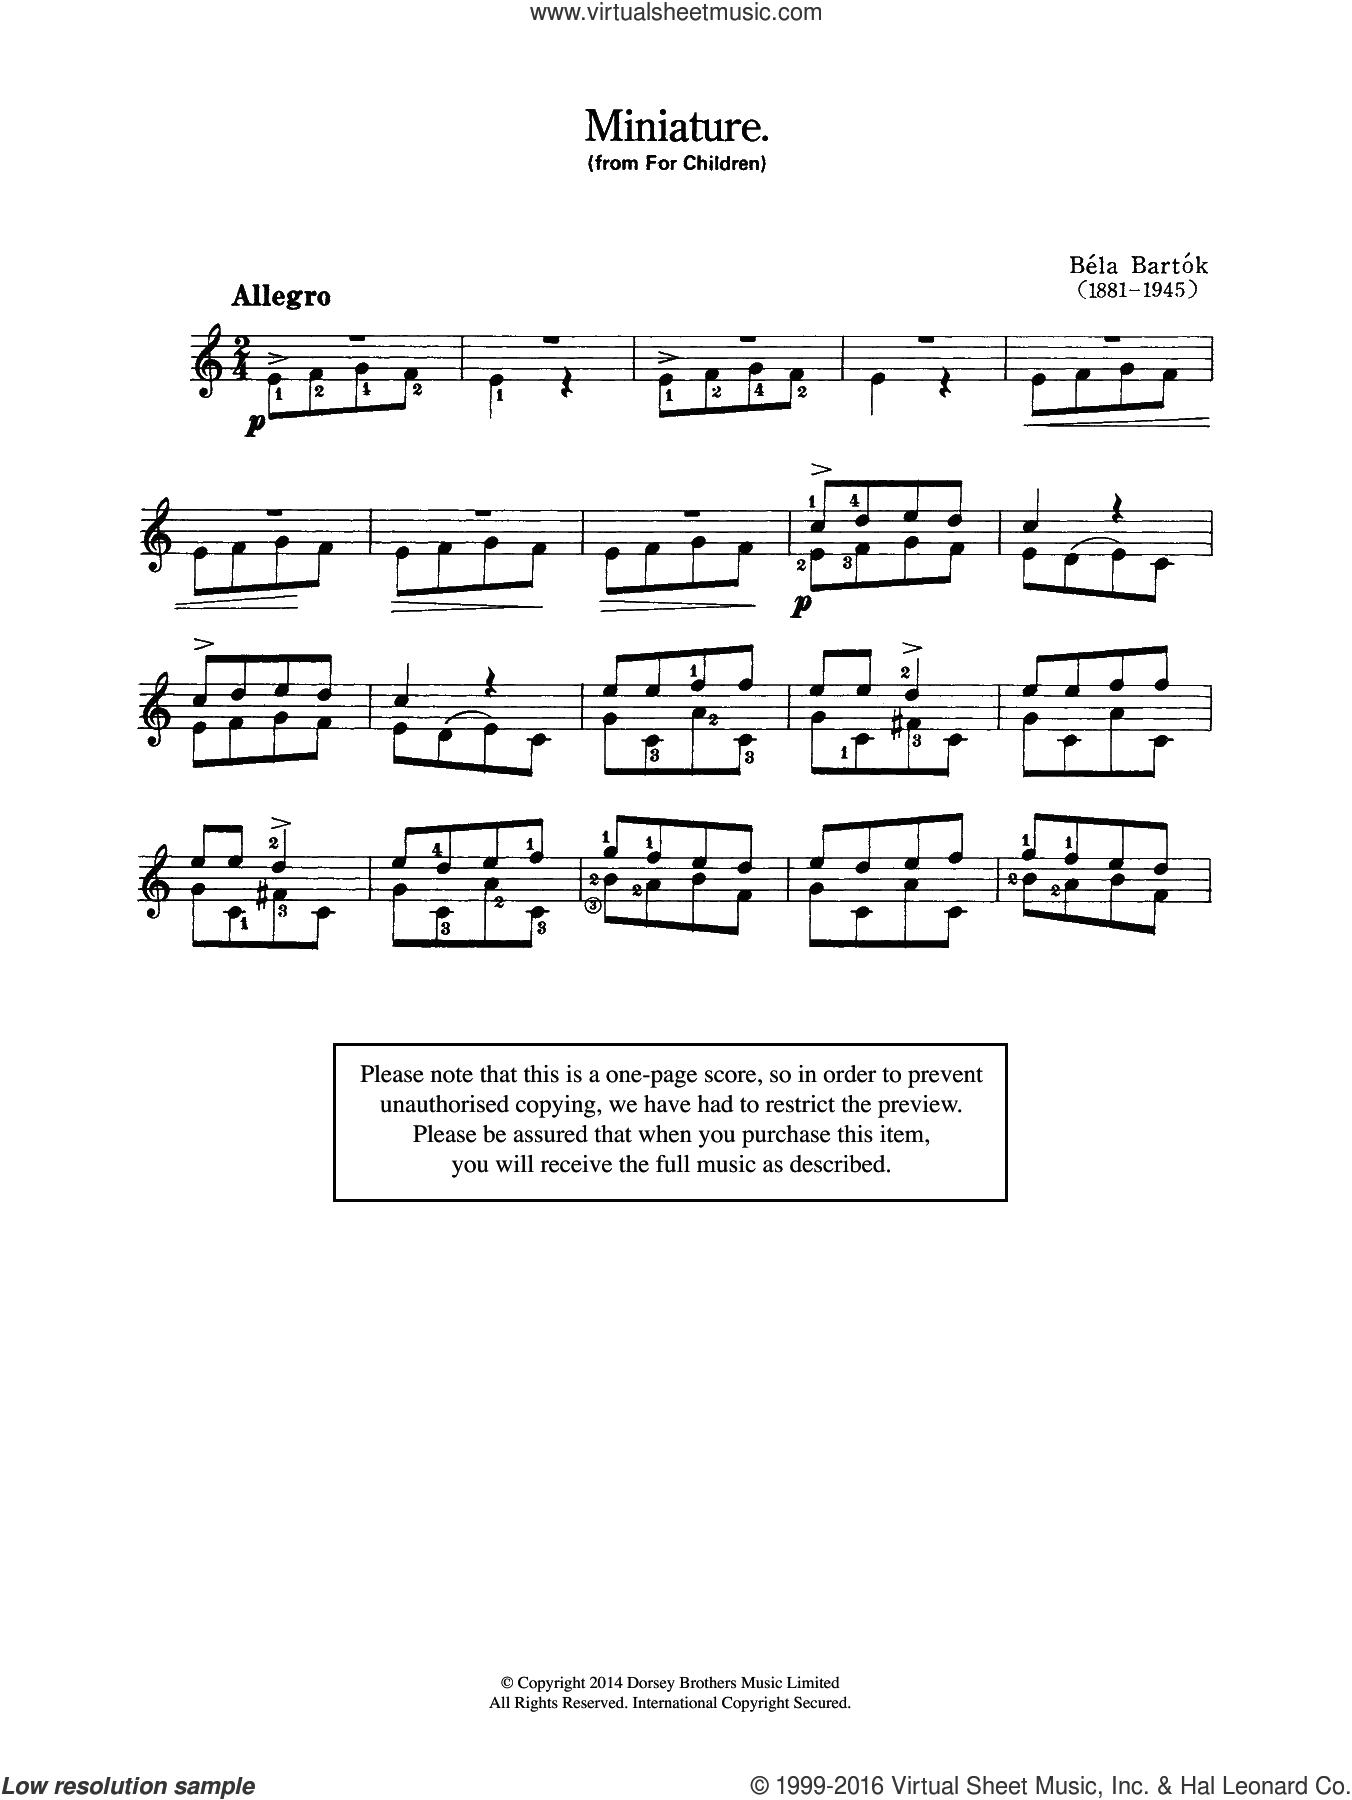 Miniature (From 'For Children') sheet music for guitar solo (chords) by Bela Bartok, classical score, easy guitar (chords)